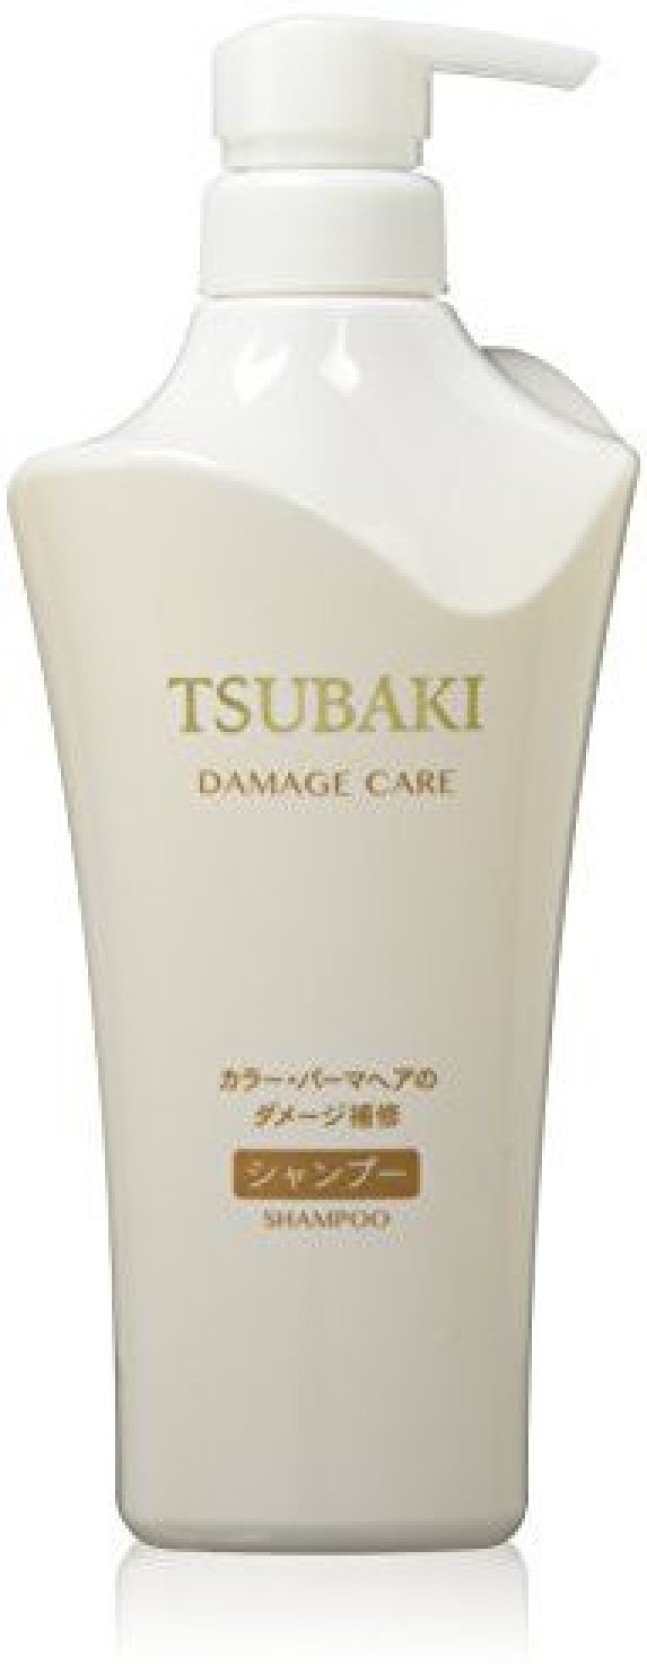 Tsubaki Shiseido Damage Care Shampoo Pump Price In India Buy Hair And Scalp On Offer